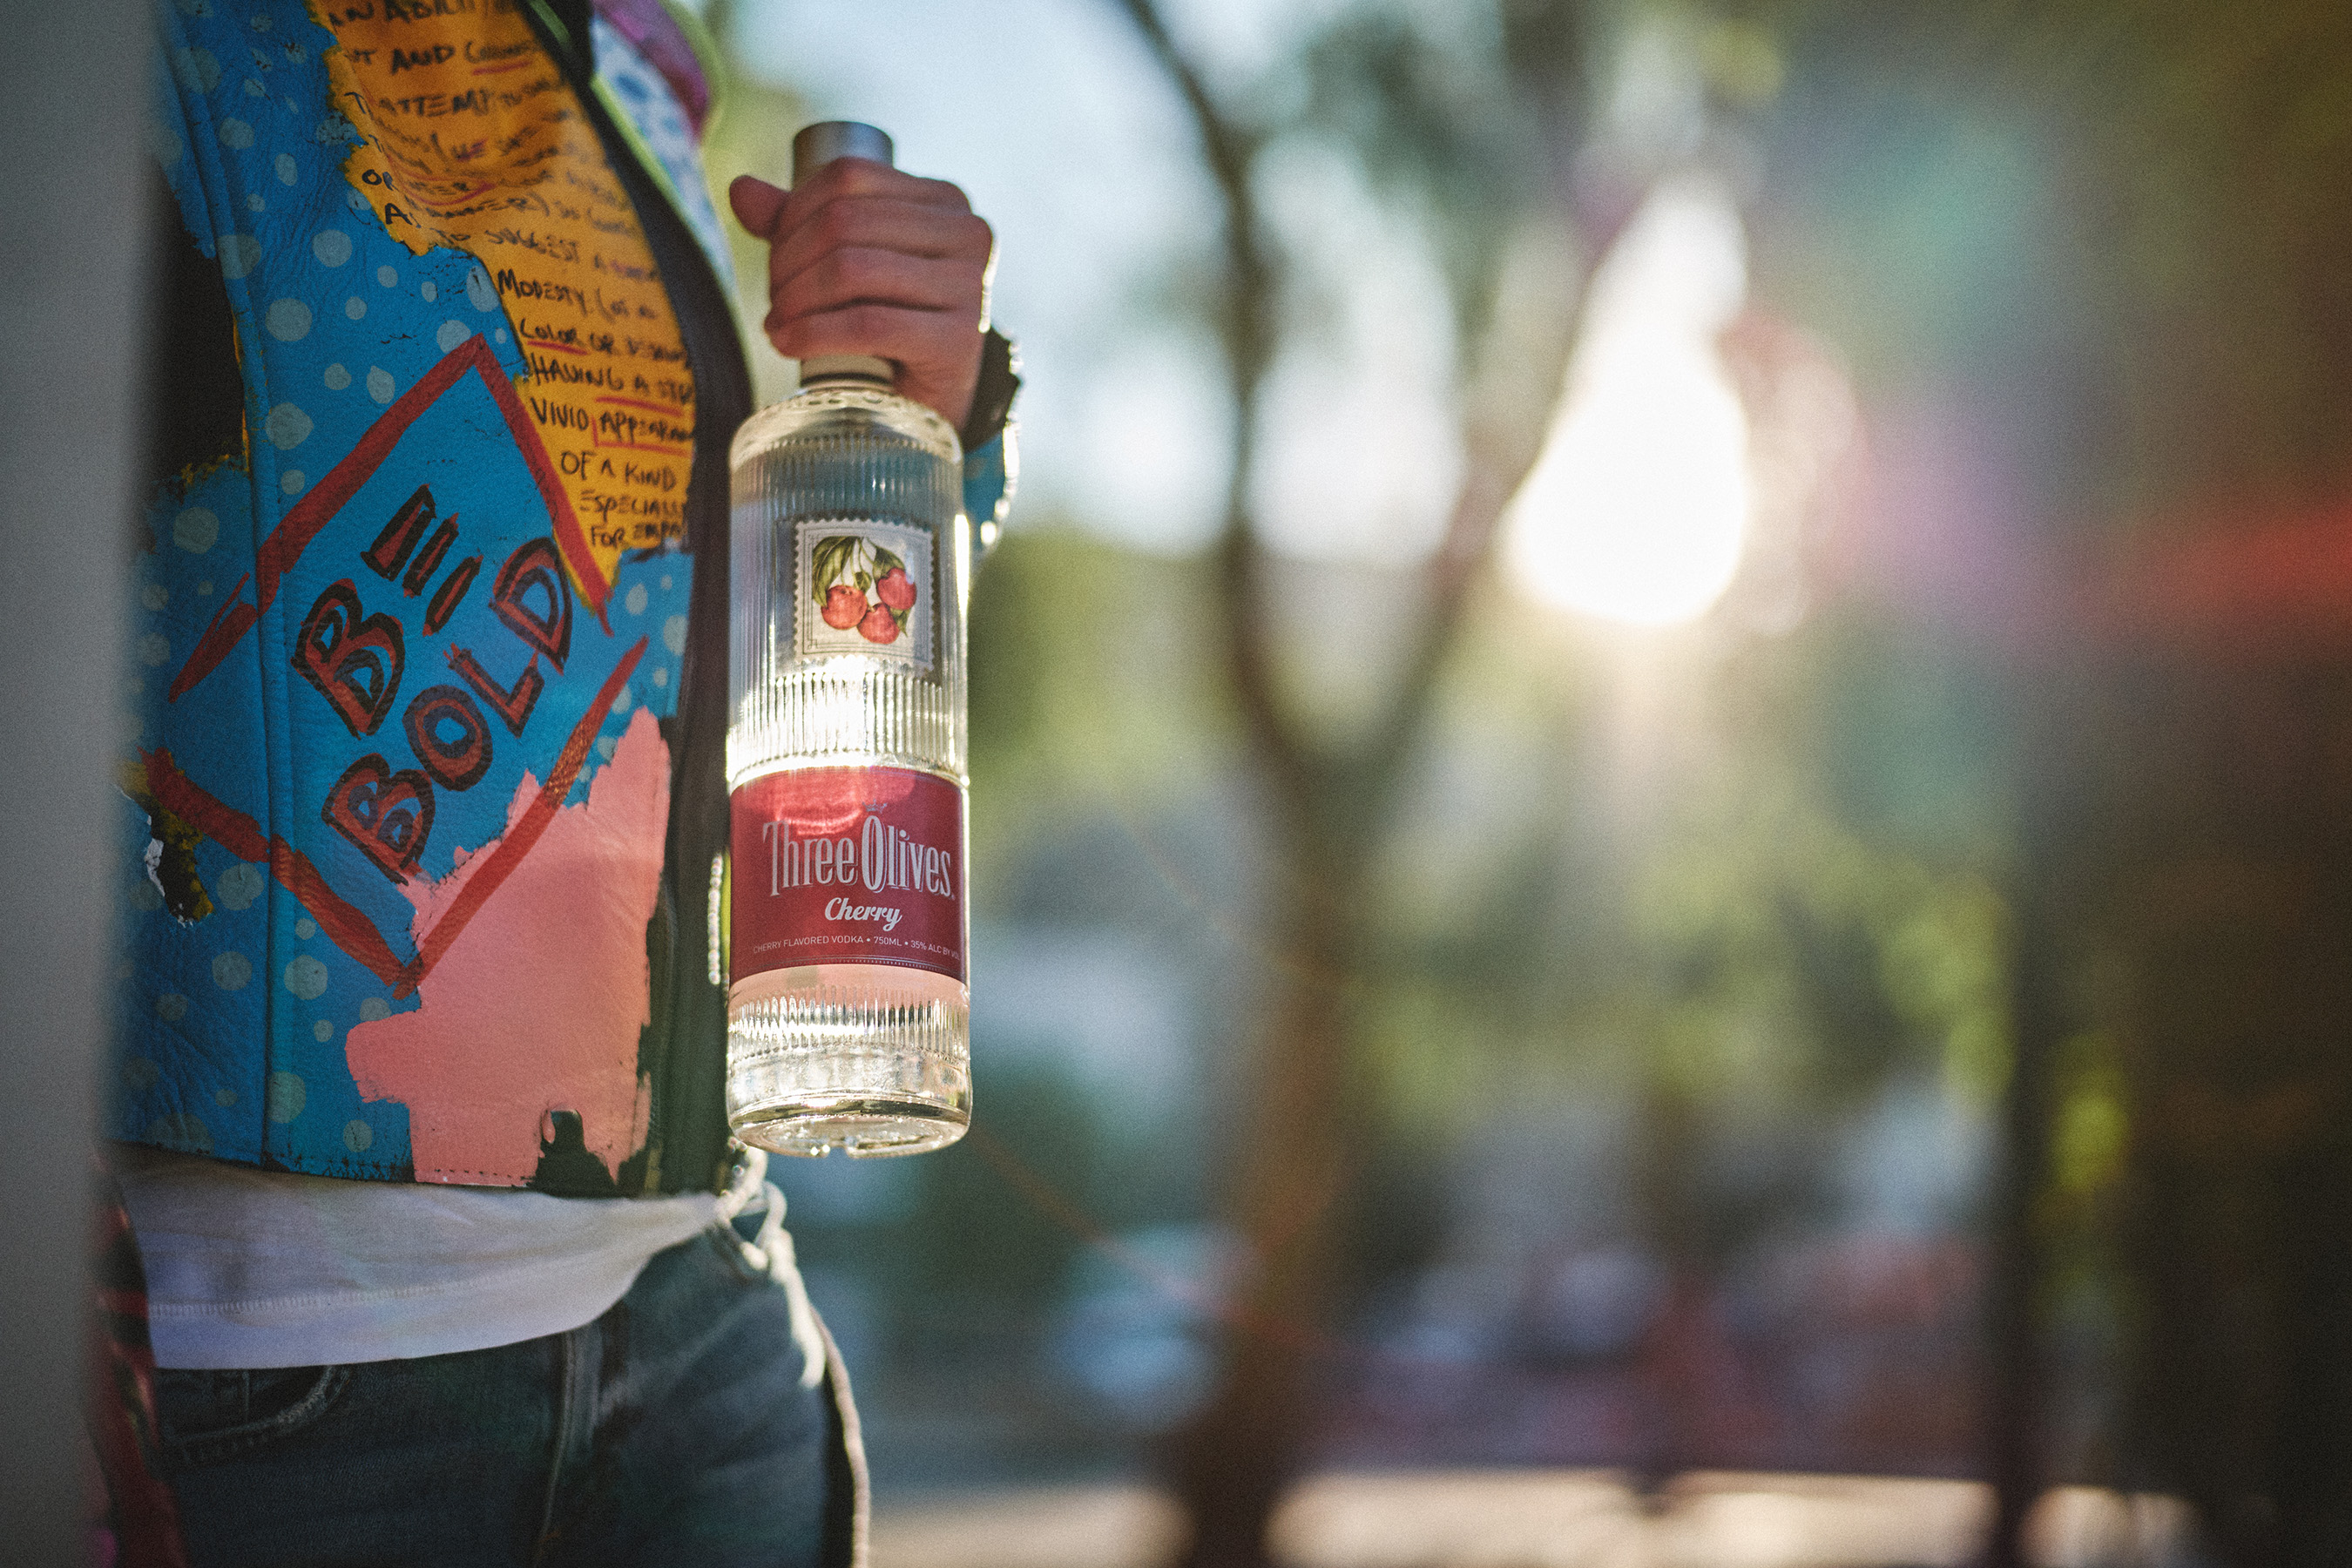 """The new Three Olives """"Find Otherness"""" campaign inspires consumers to be bold and cast boring to the wind. """"Find Otherness"""" celebrates individuality and reflects the fun and quirky spirit inherent in Three Olives Vodka."""